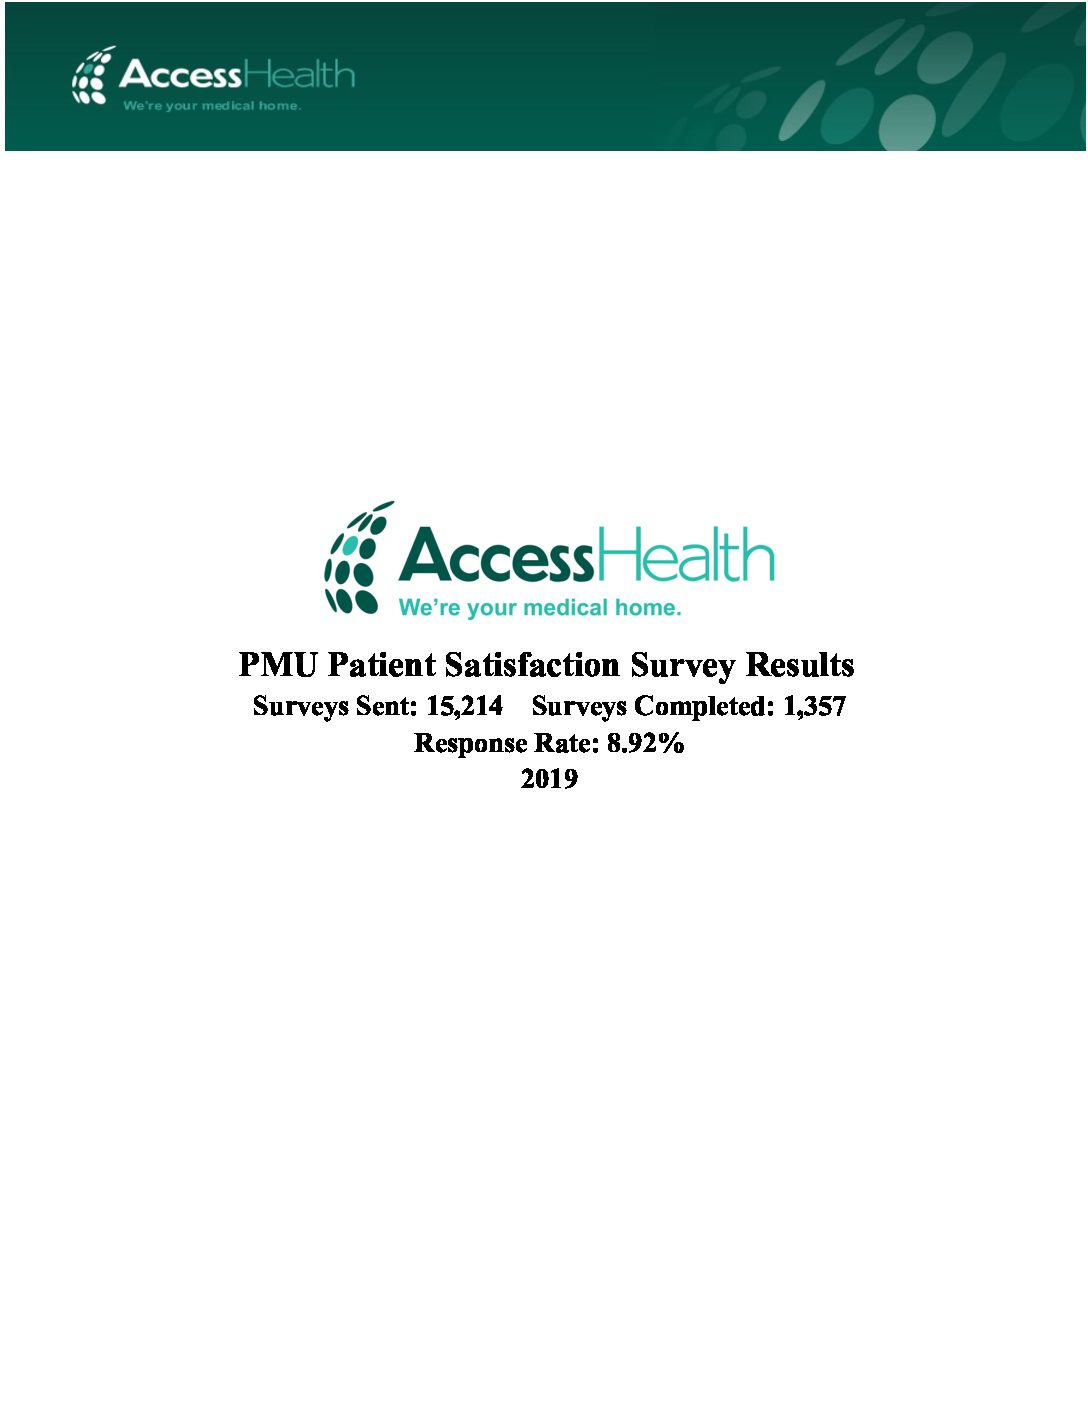 2019 PMU Patient Satisfaction Survey Results